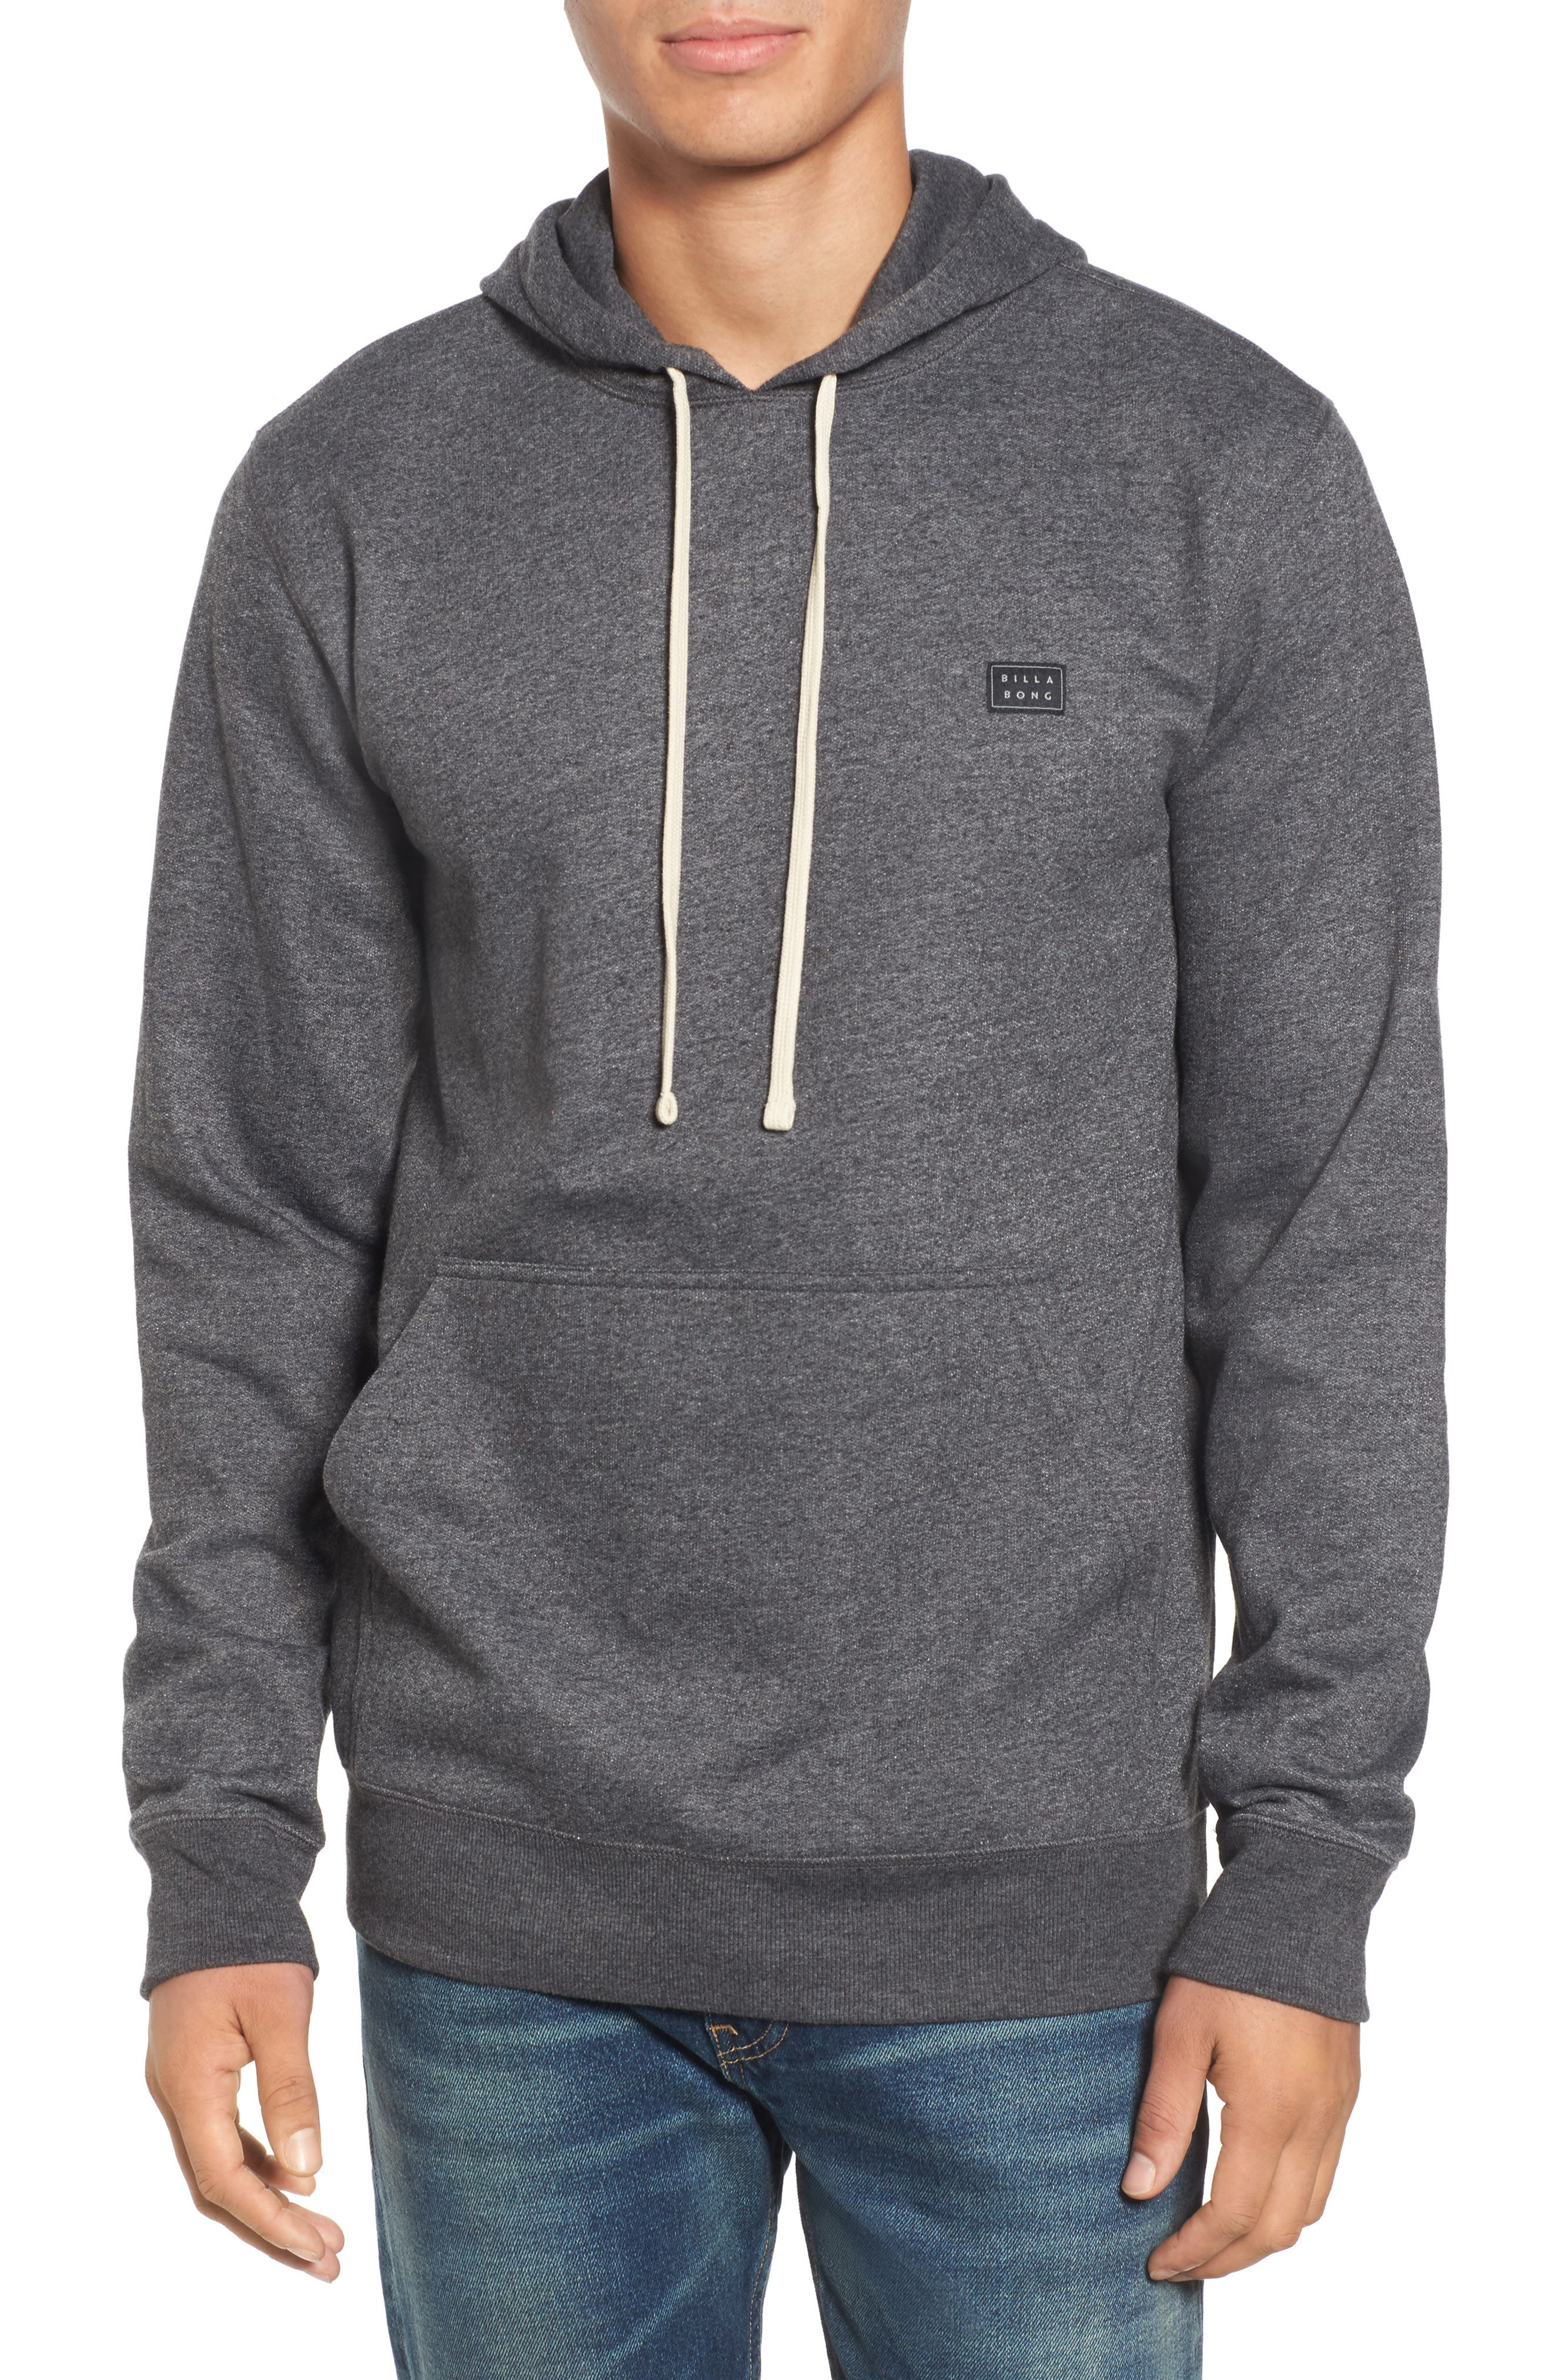 All Day Pullover Hoodie,                         Main,                         color, Dark Grey Heather